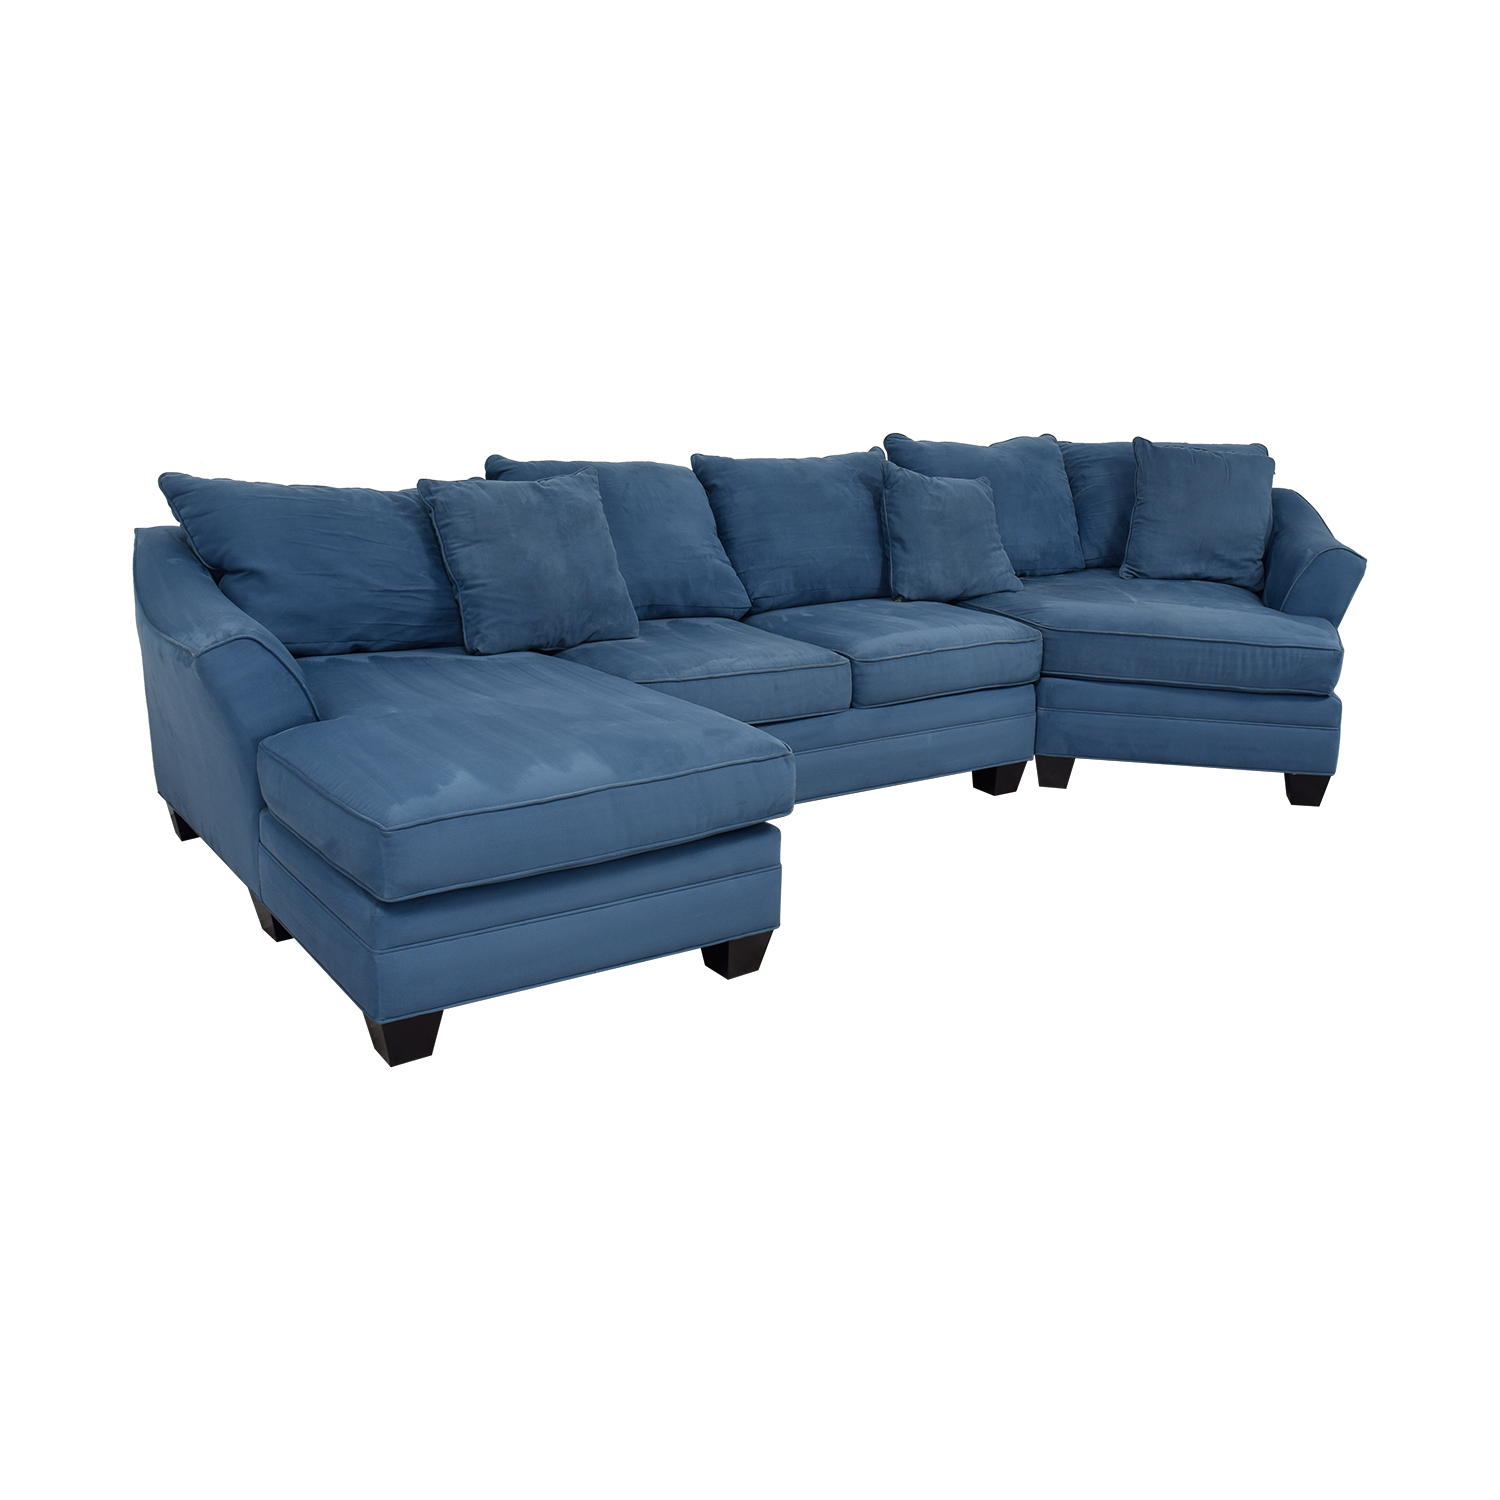 H.M. Richards H.M. Richards Foresthill Blue Microfiber Chaise and Corner Seat Sectional Blue